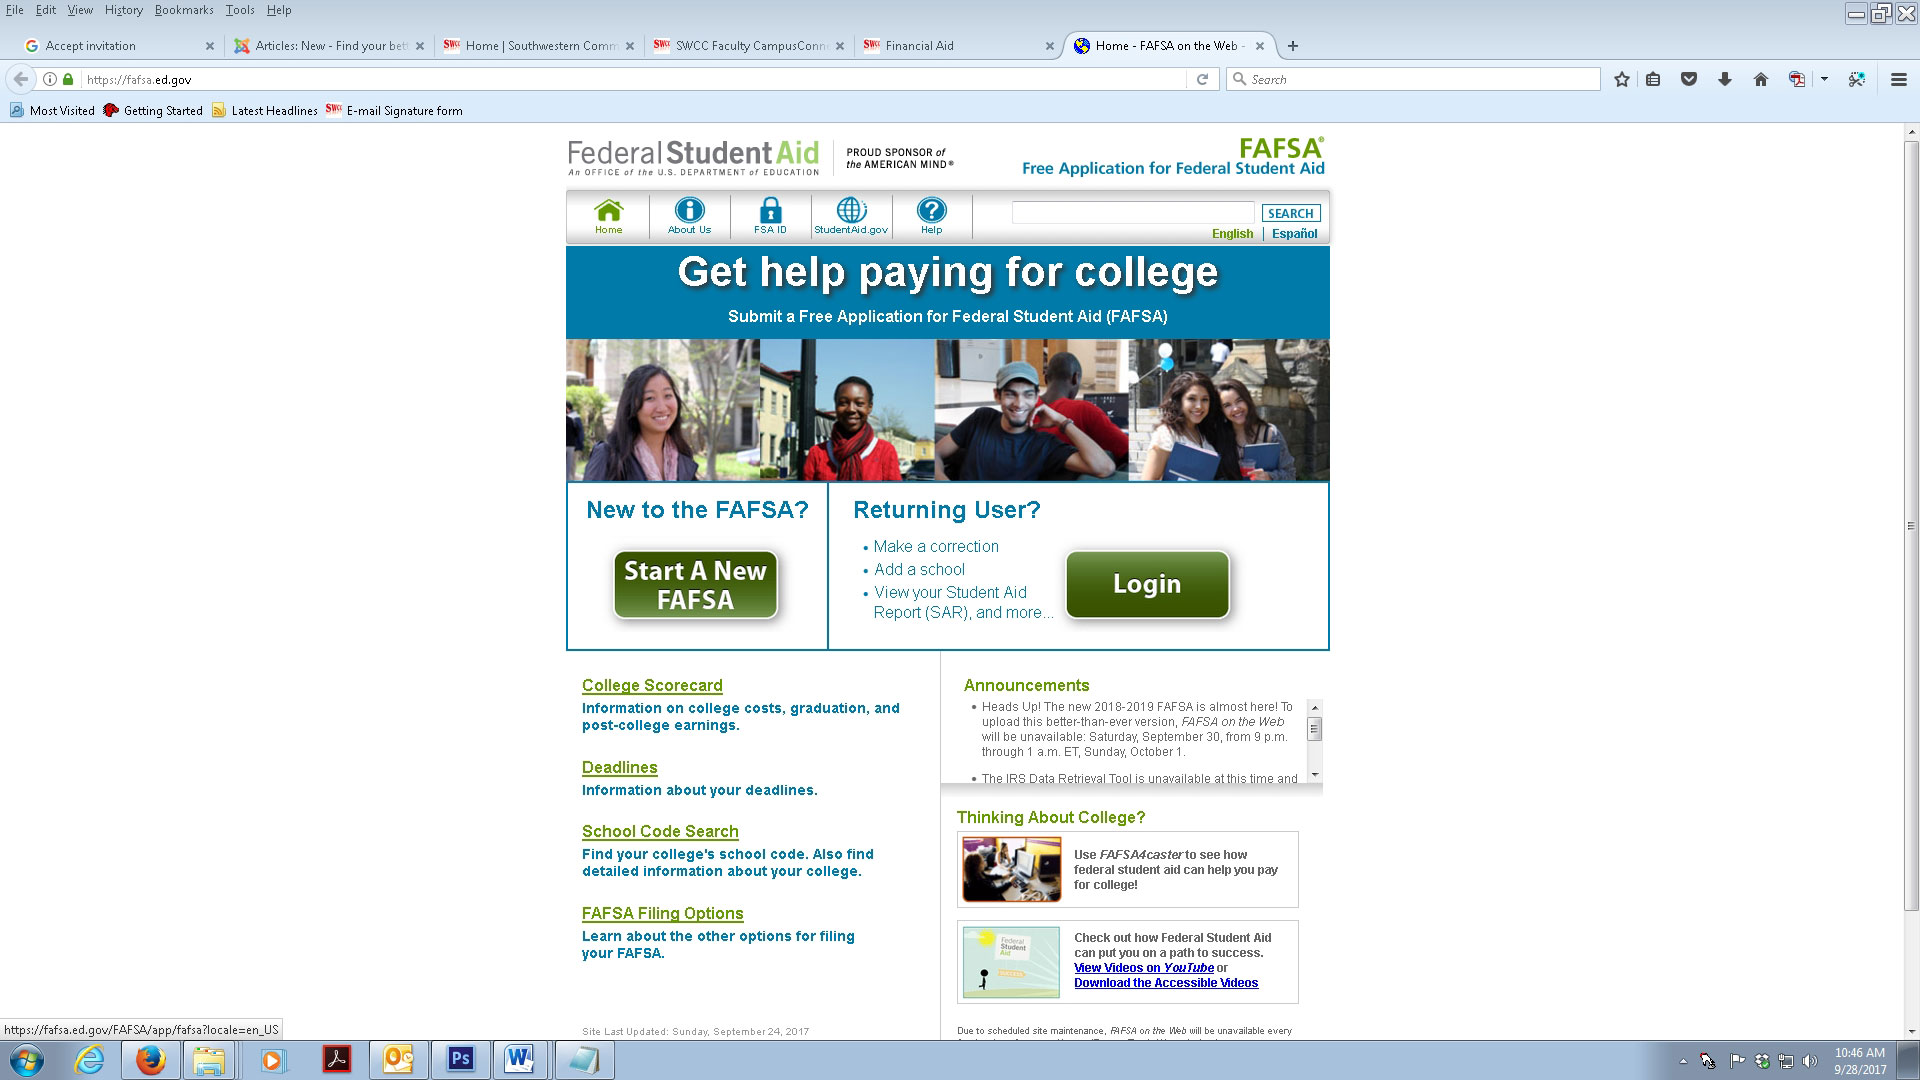 FAFSA website homescreen